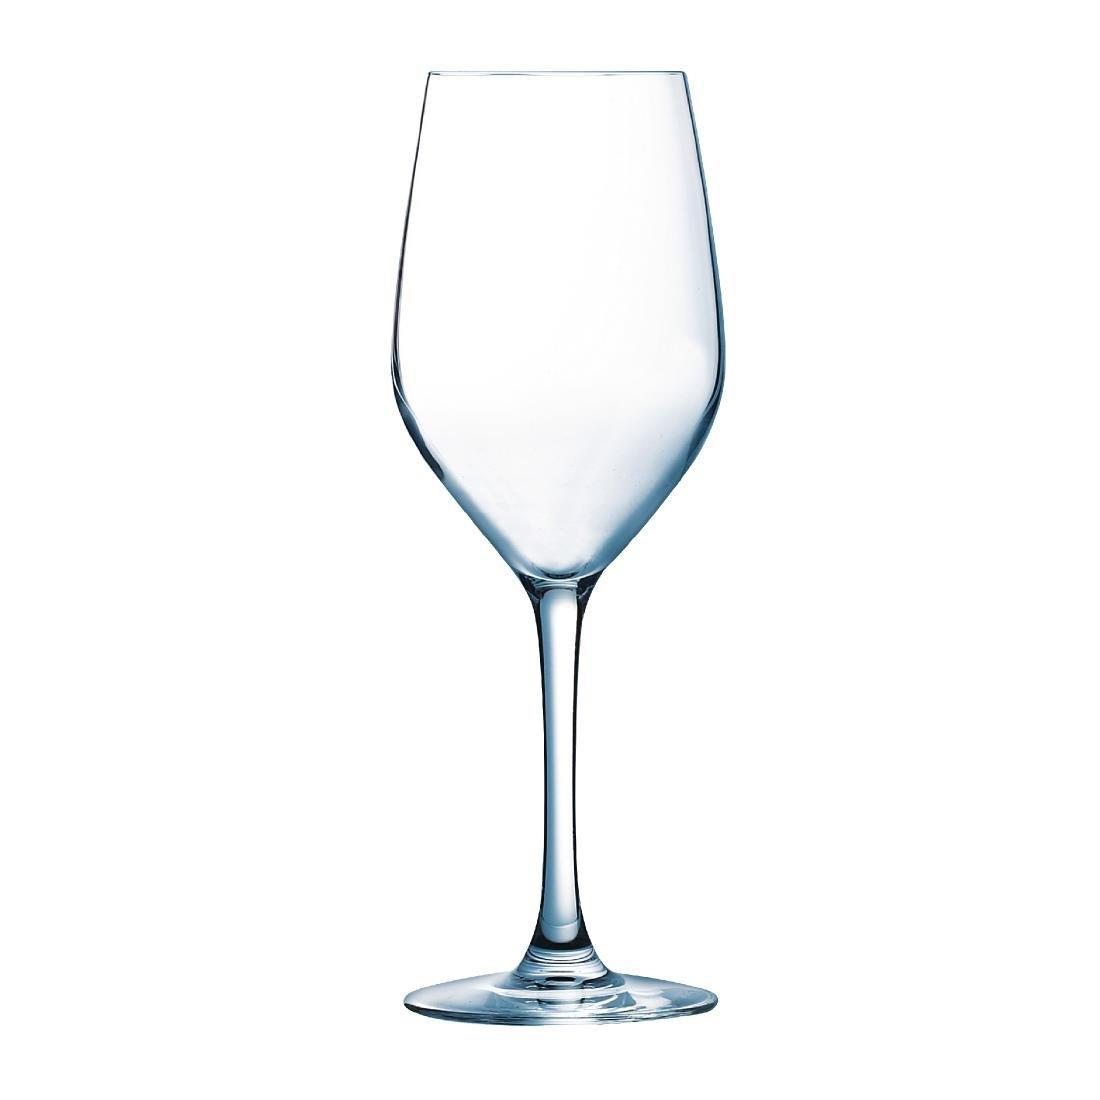 Arc Mineral Wine Glass Kwarx - 270ml 9.5oz (Box 24) - GD964